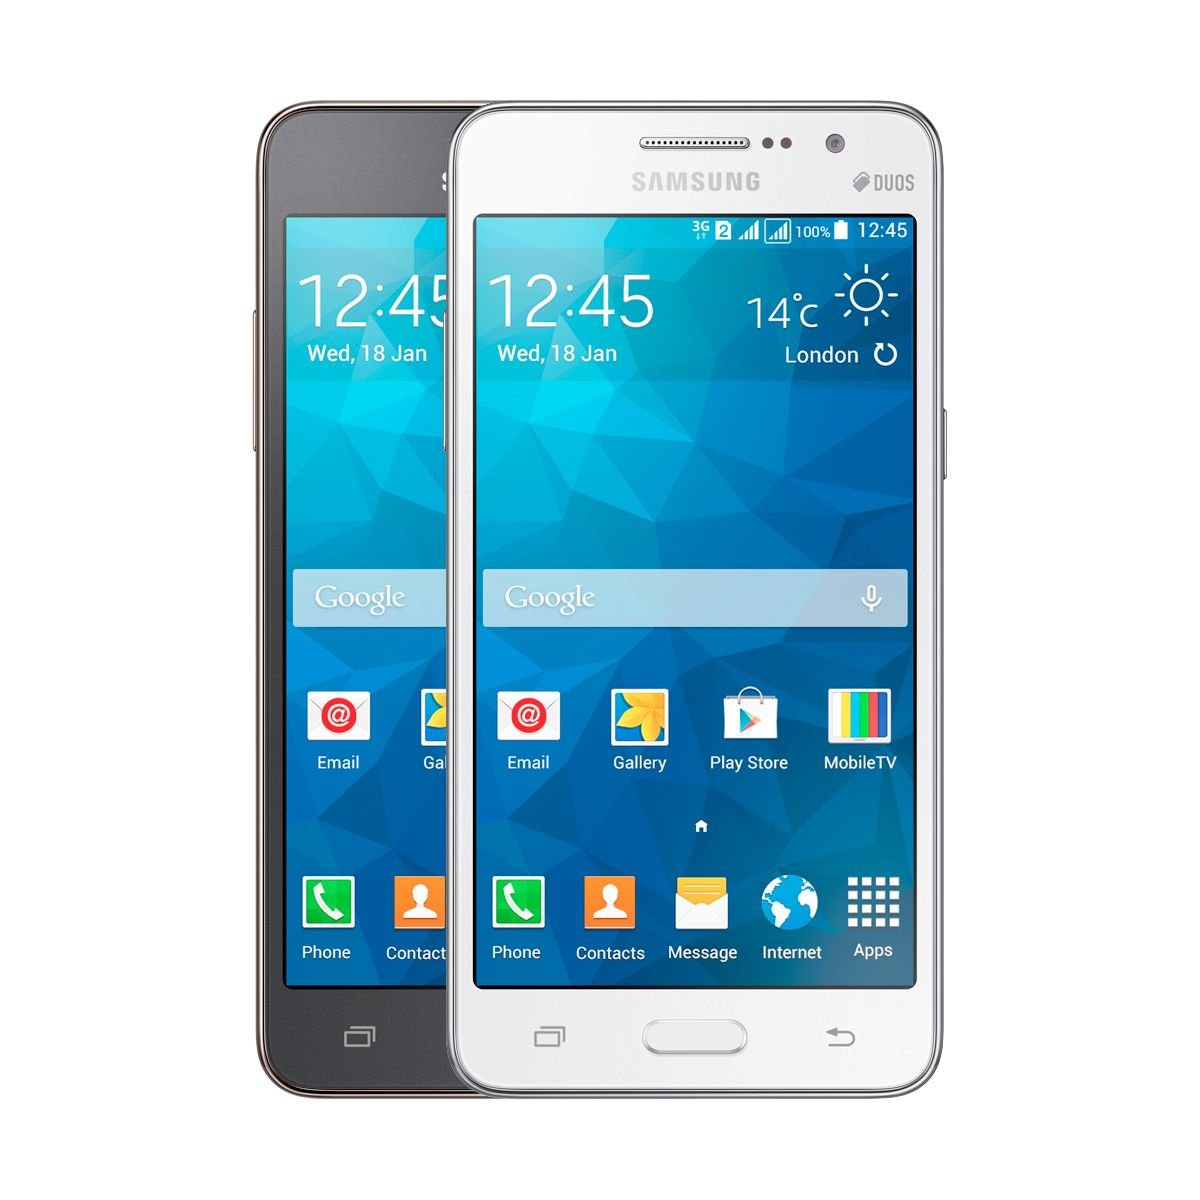 Celular Samsung Galaxy Grand Prime Duos TV - Camera Frontal 5MP, Android 4.4, 3G, 8GB, Quad Core 1.2Ghz, Dual Chip, TV Digital, Desbloqueado ANATEL